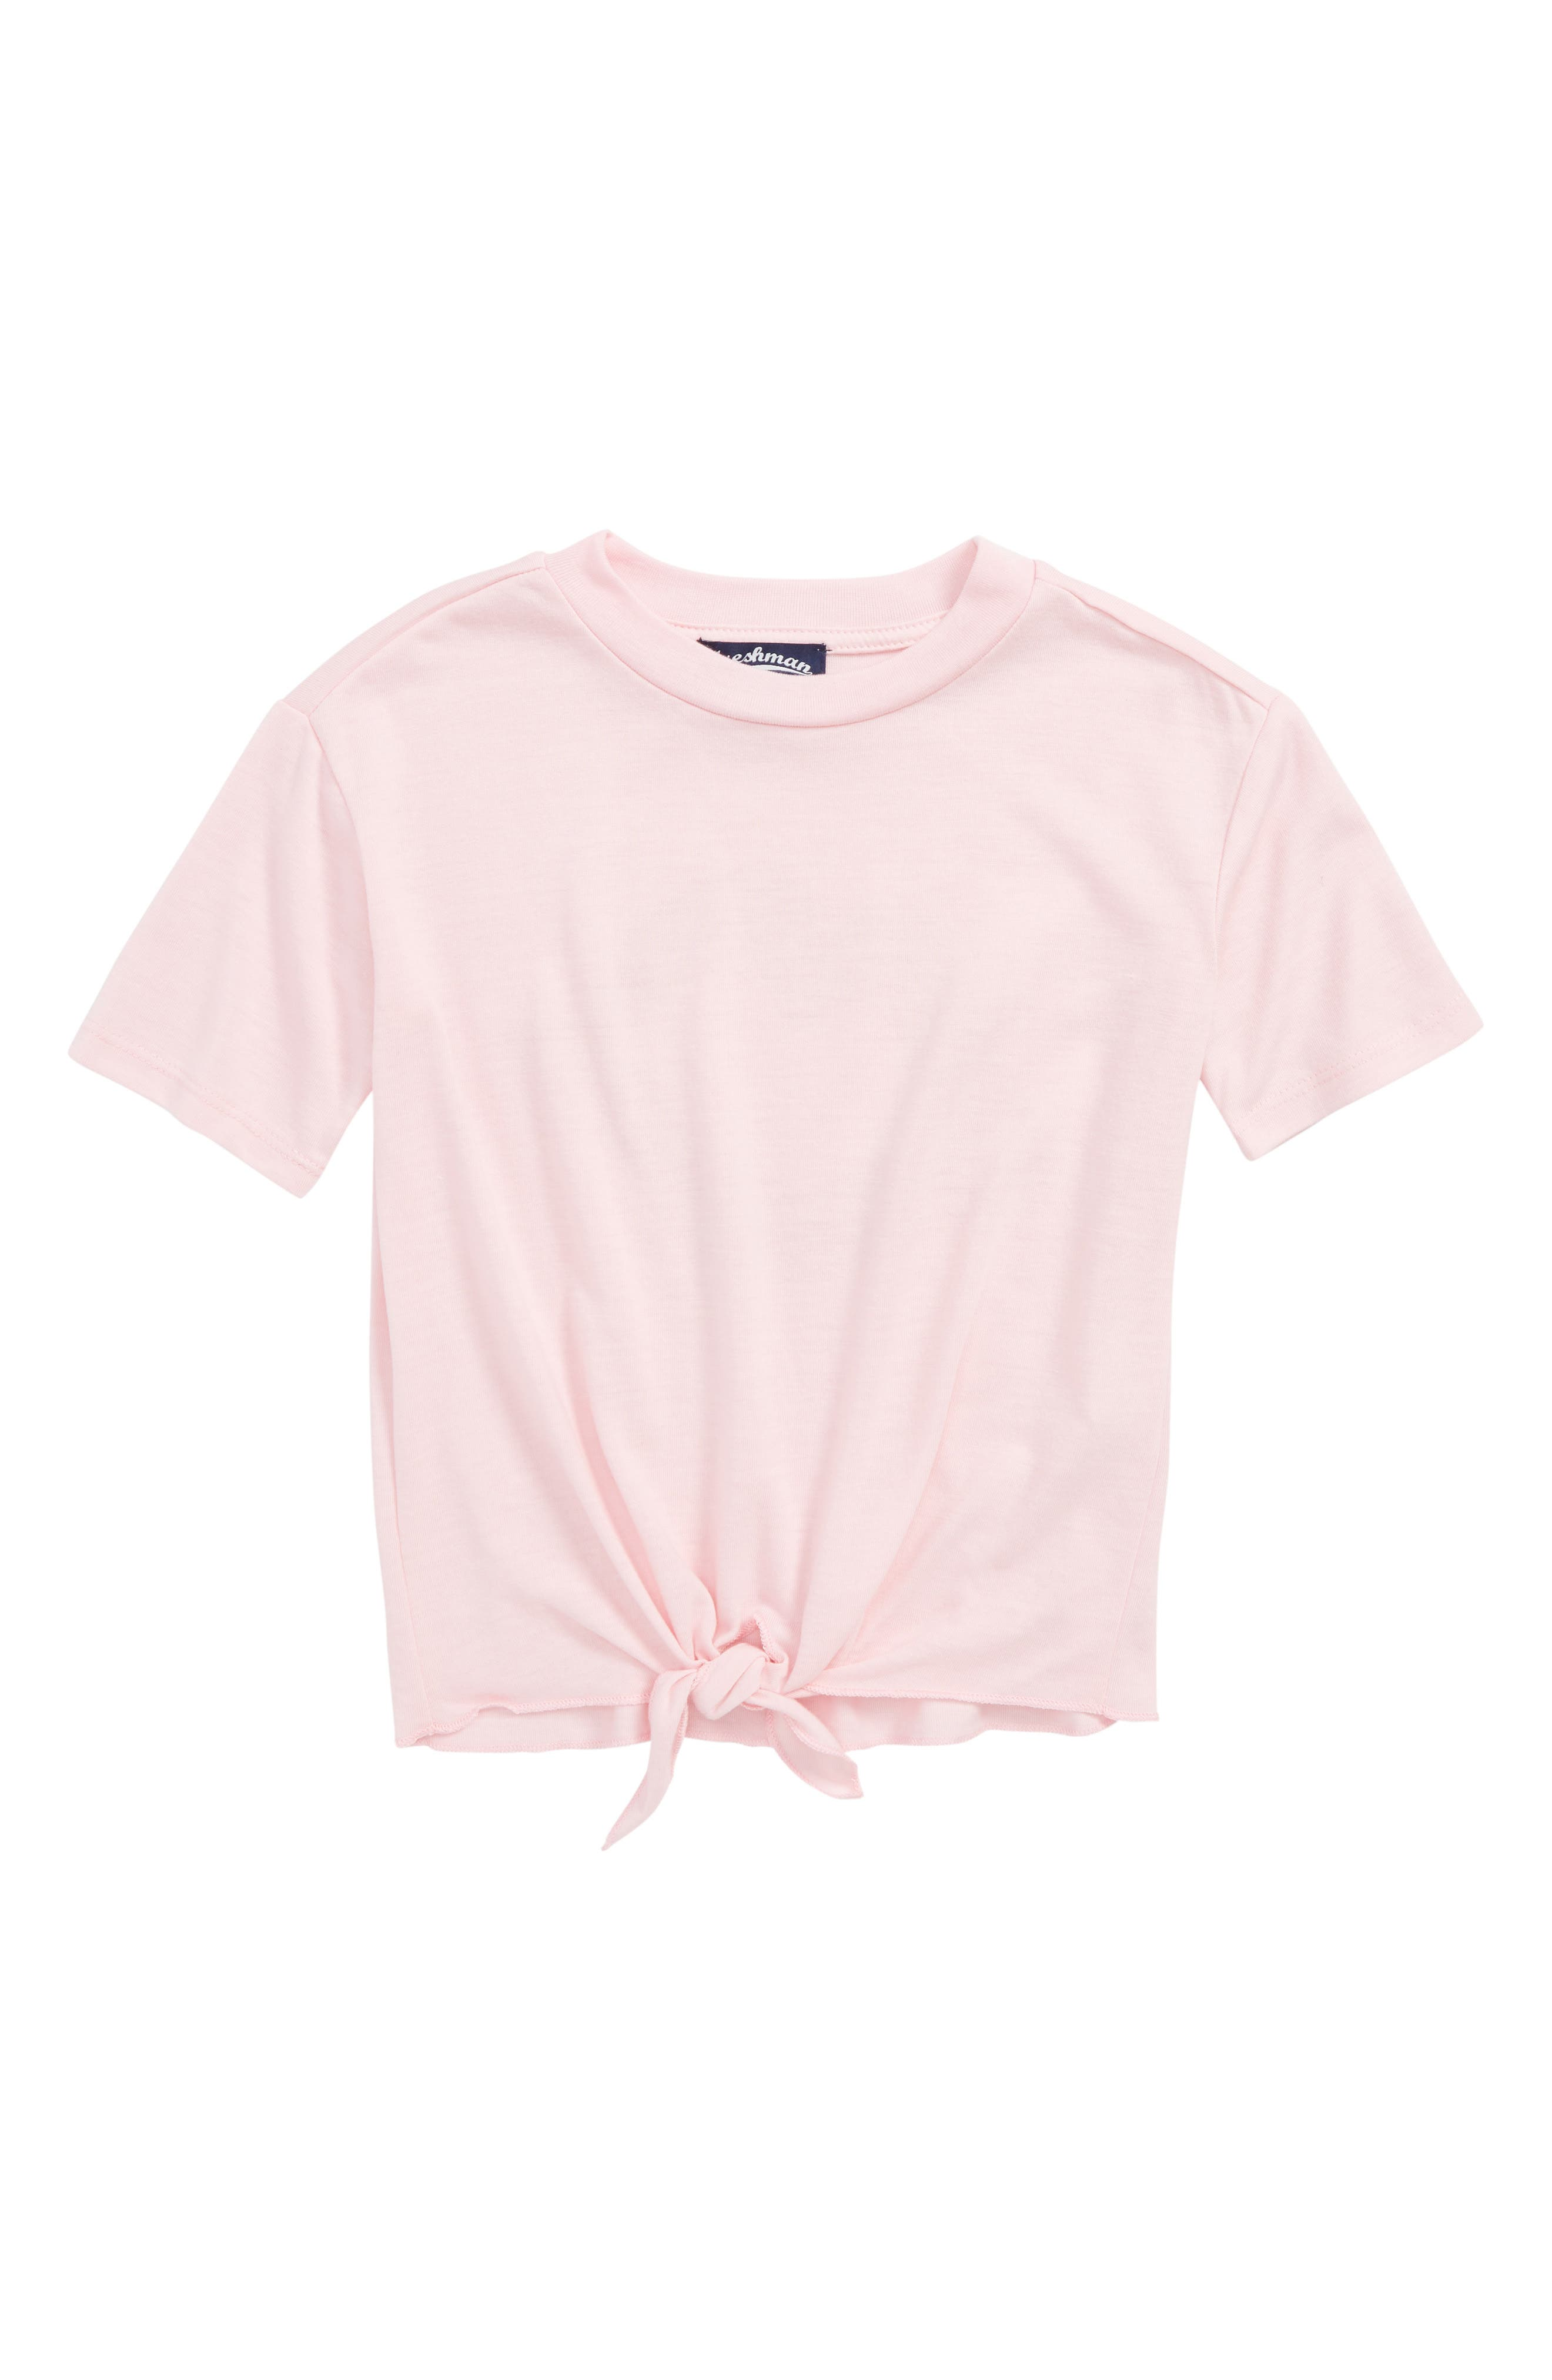 FRESHMAN Knot Front Tee, Main, color, 664